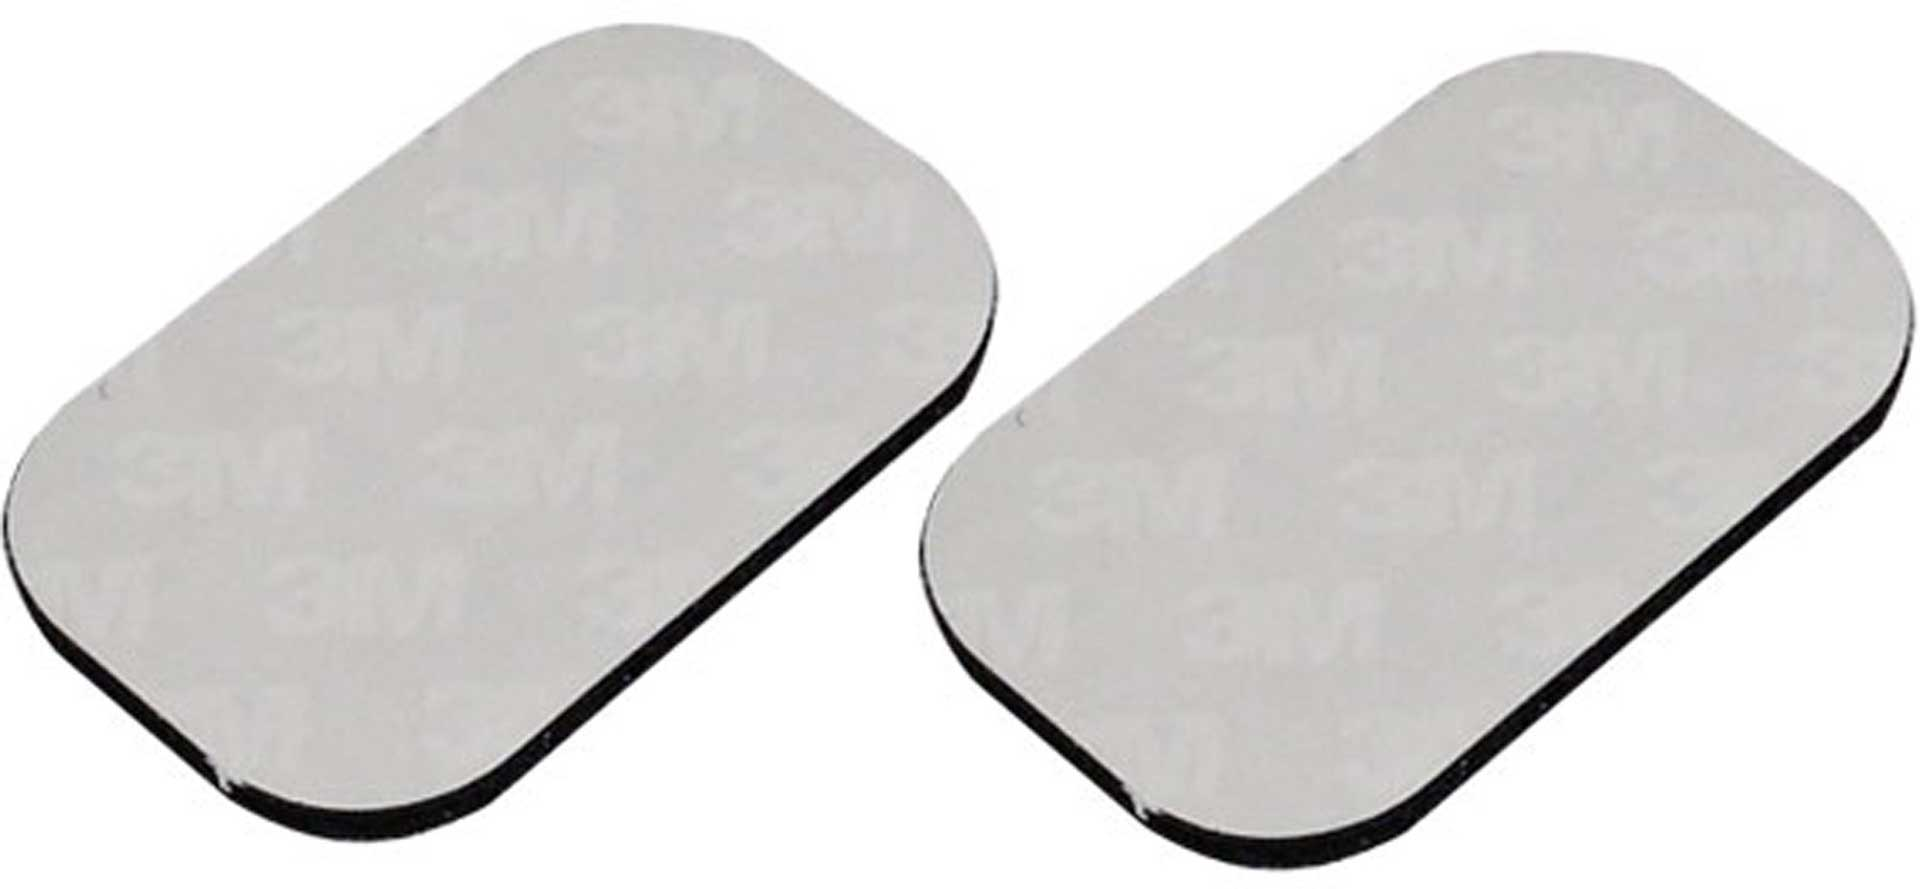 DUALSKY BATTERY ADHESIVE PADS 3M 50/30MM 5PCS